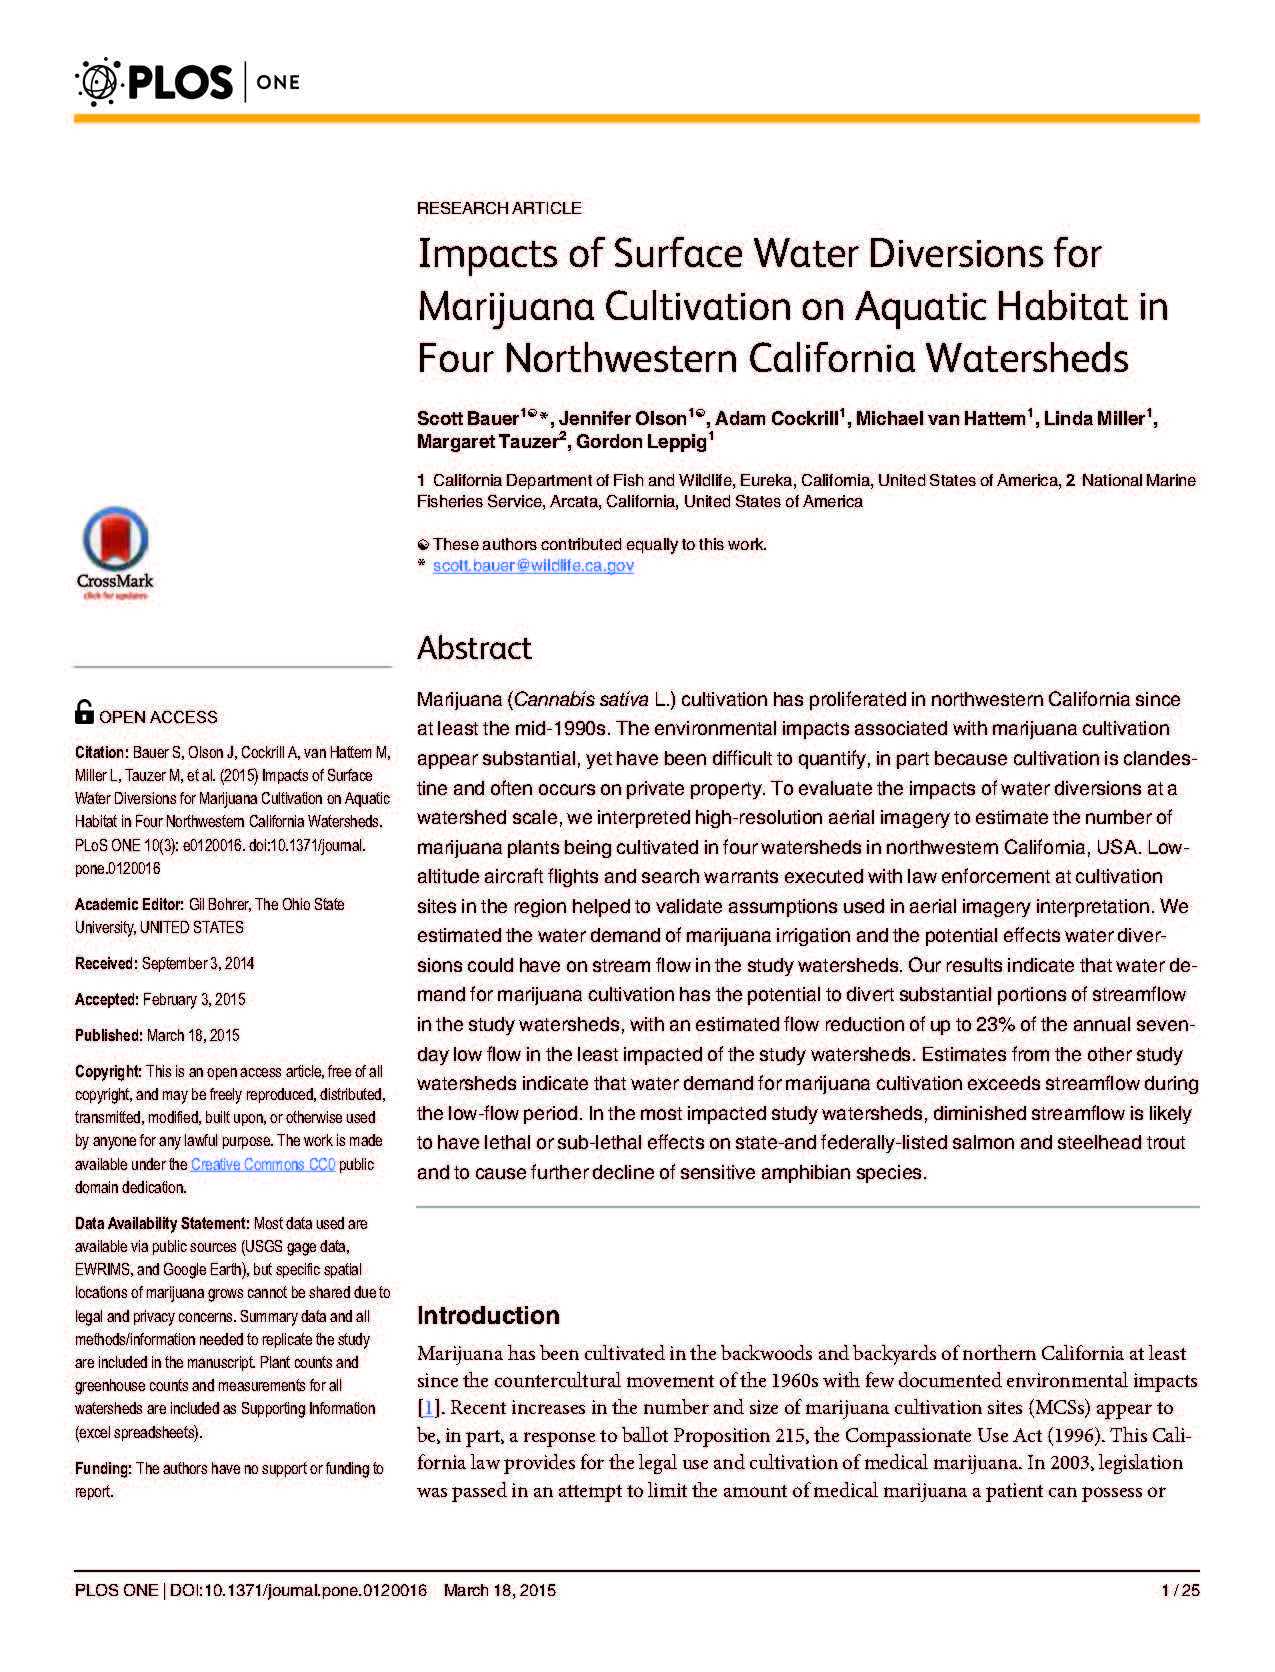 Impacts of Surface Water Diversions for Marijuana